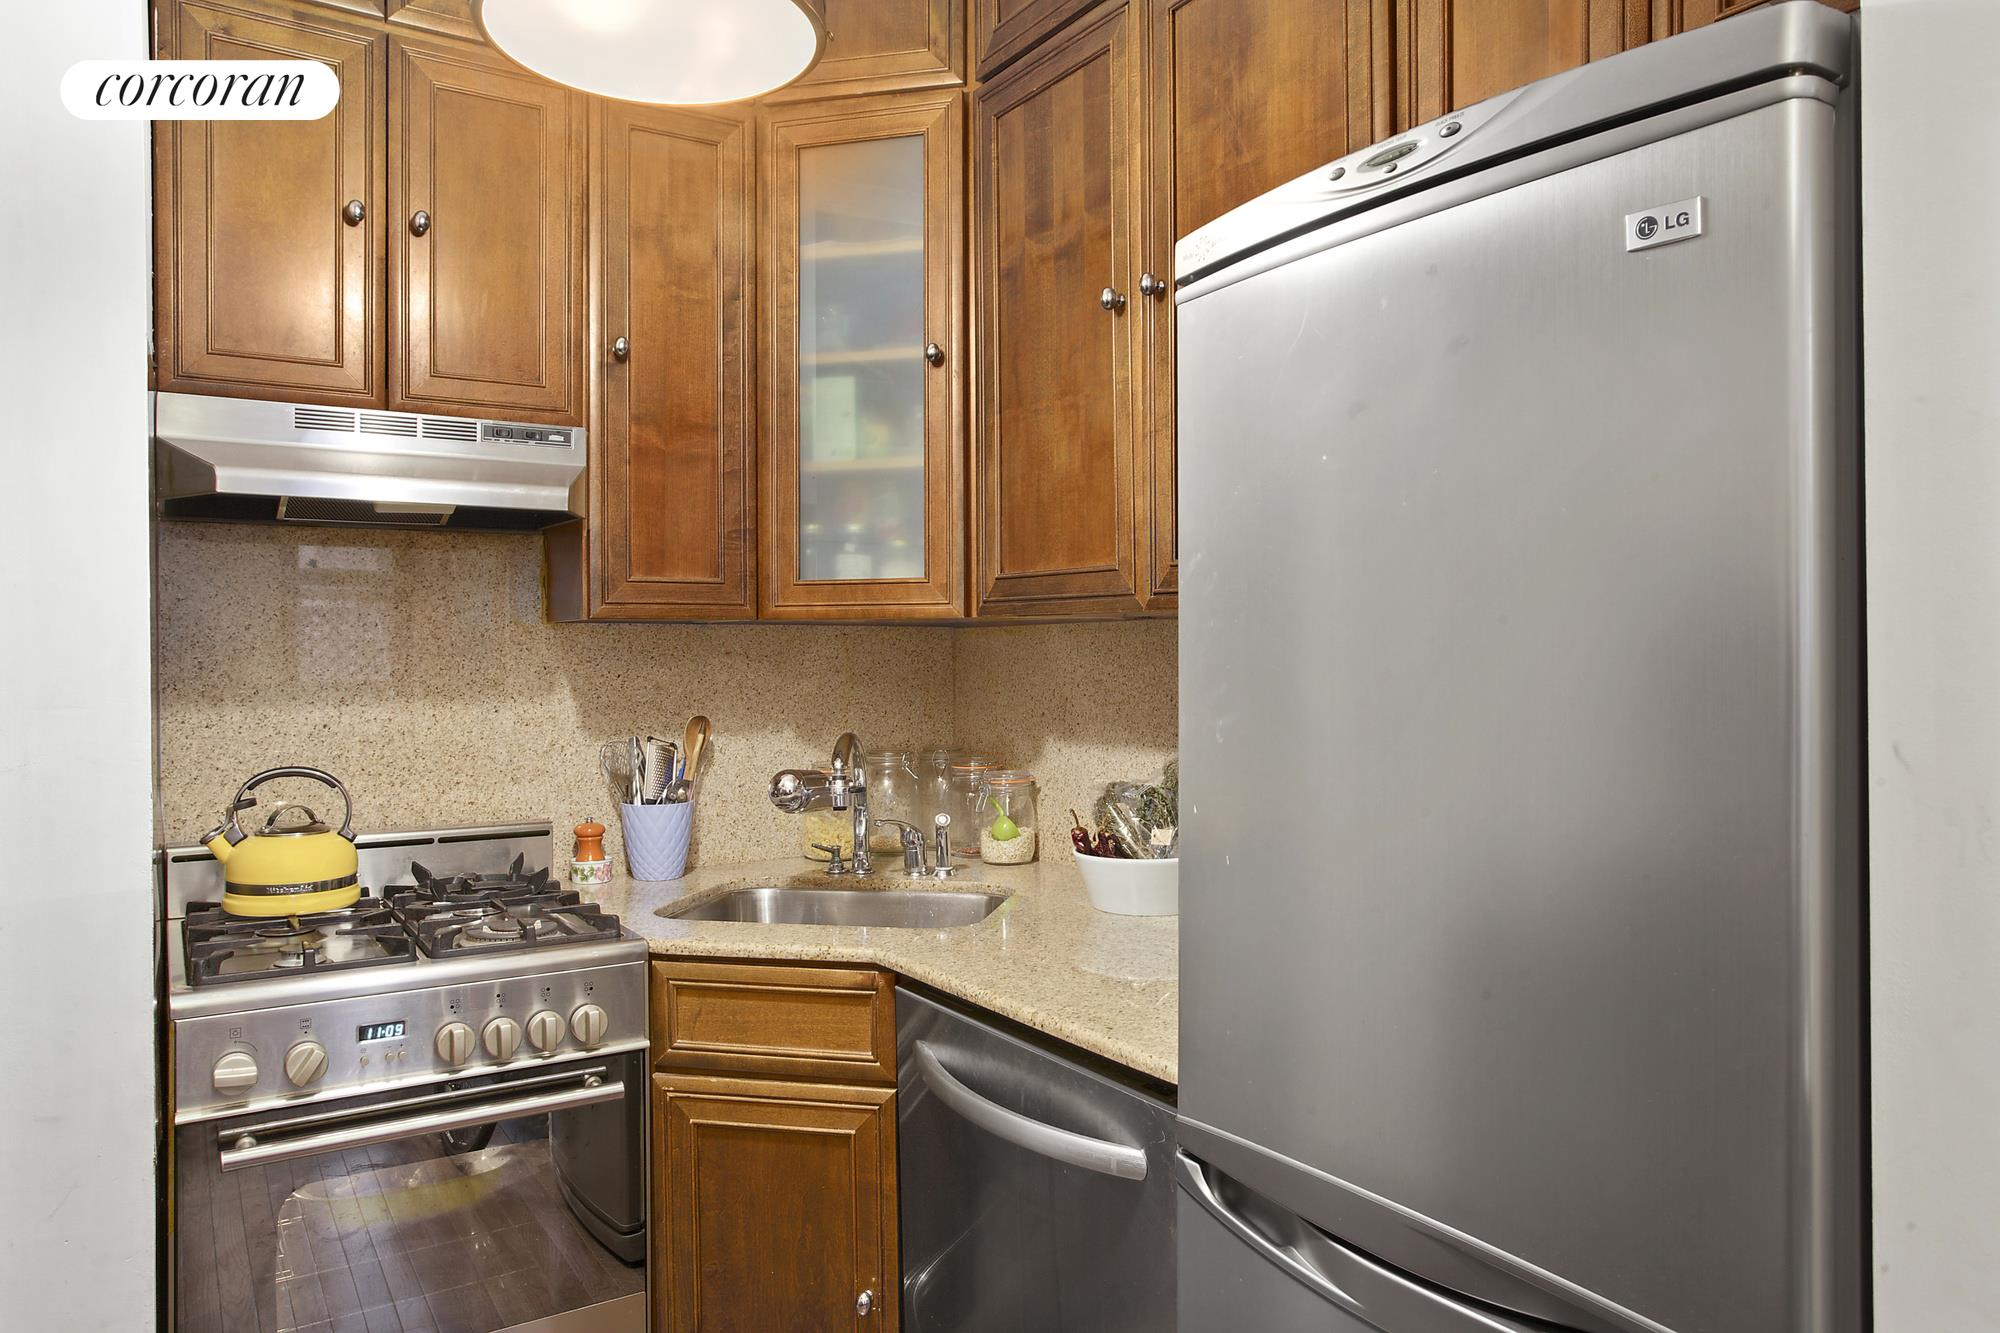 Corcoran, 88 Horatio Street, Apt. 1B, West Village Real Estate ...